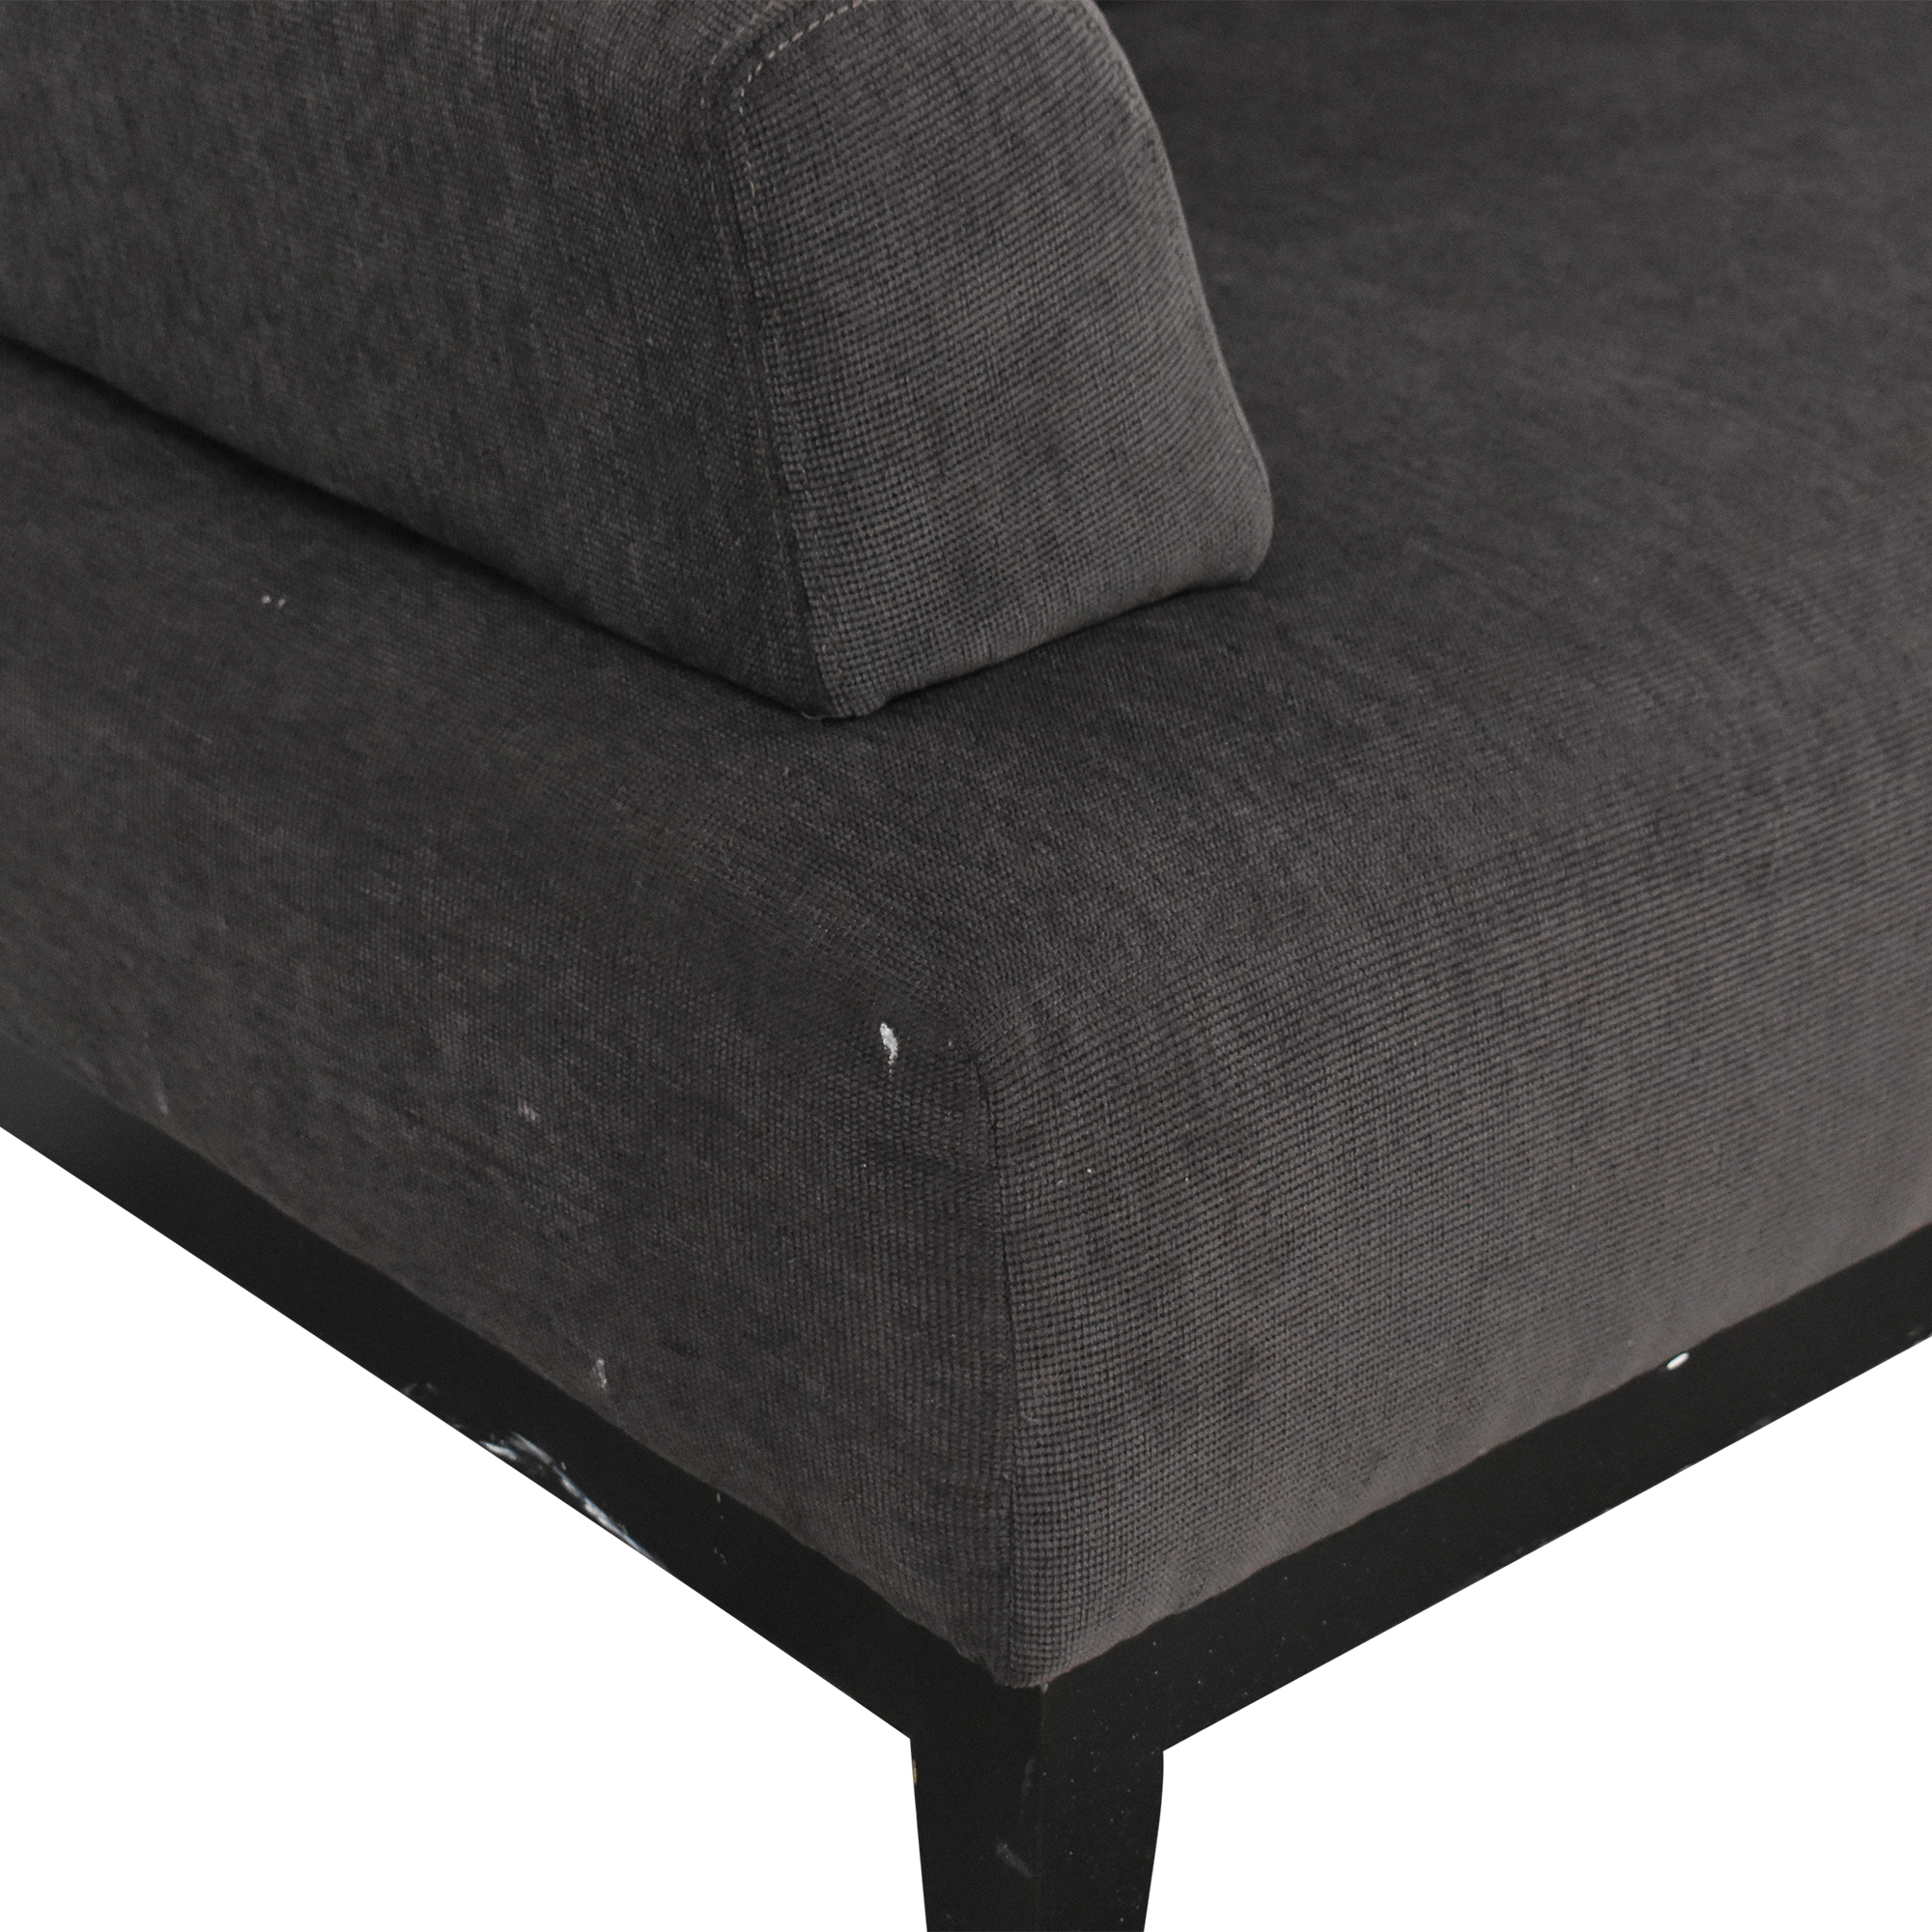 Convertible Two Cushion Daybed coupon